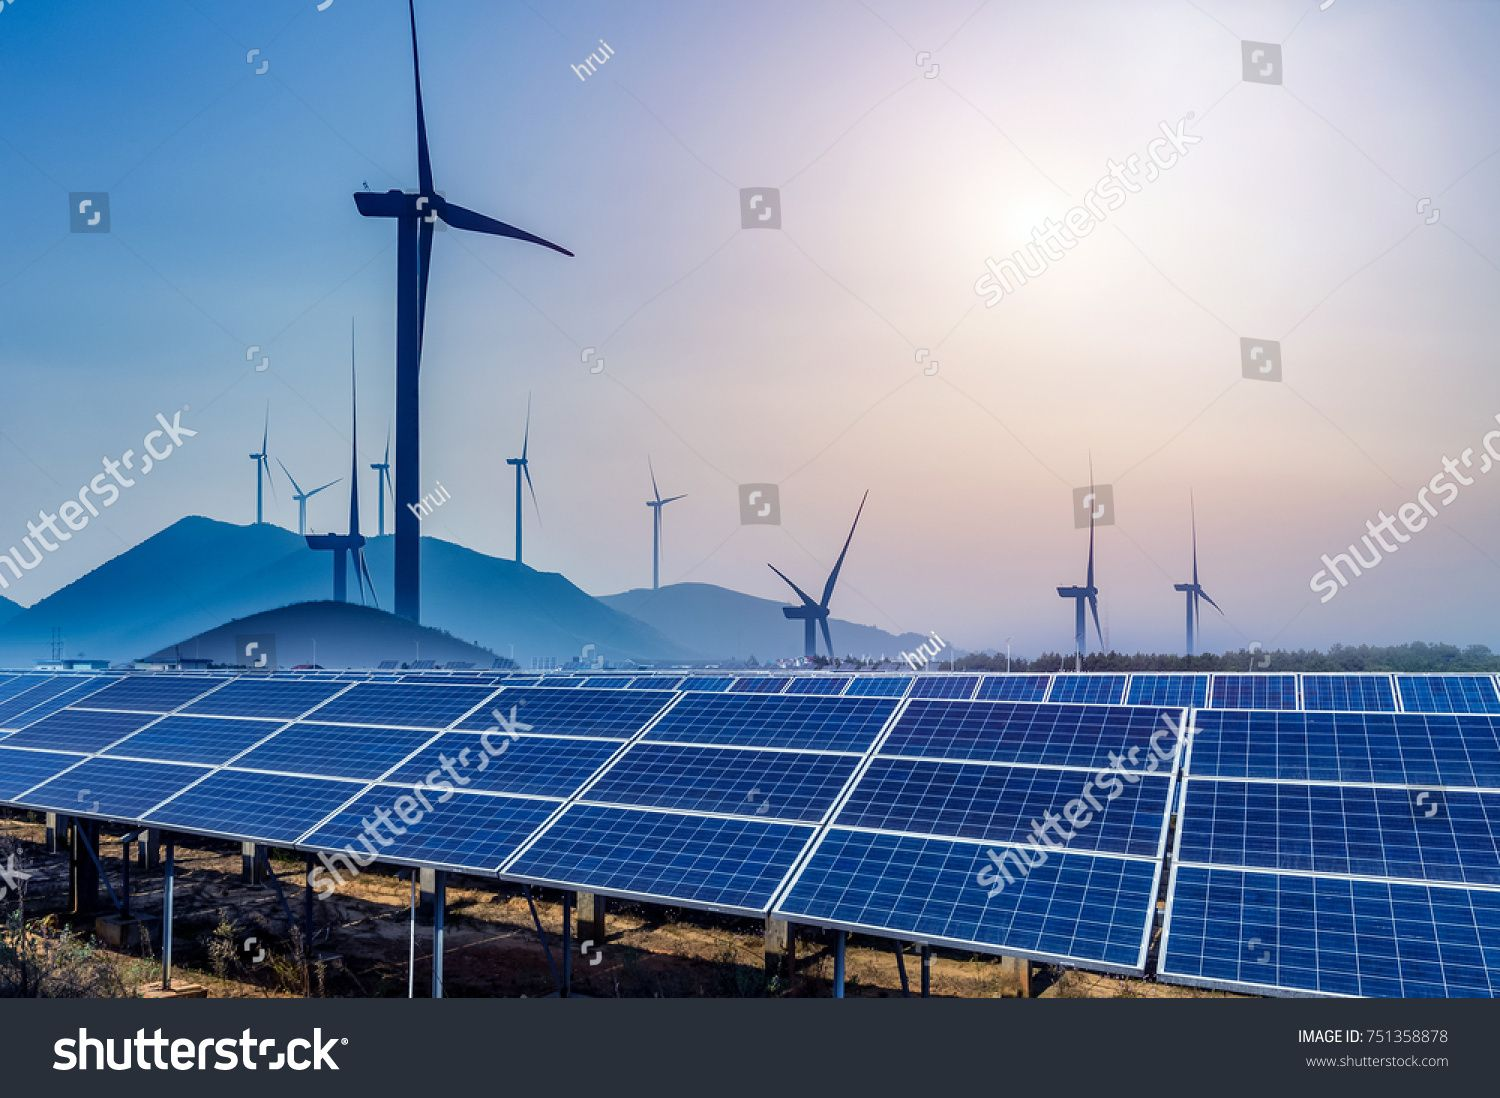 Solar and wind power, clean energy #Ad , #affiliate, #wind#Solar#power#energy